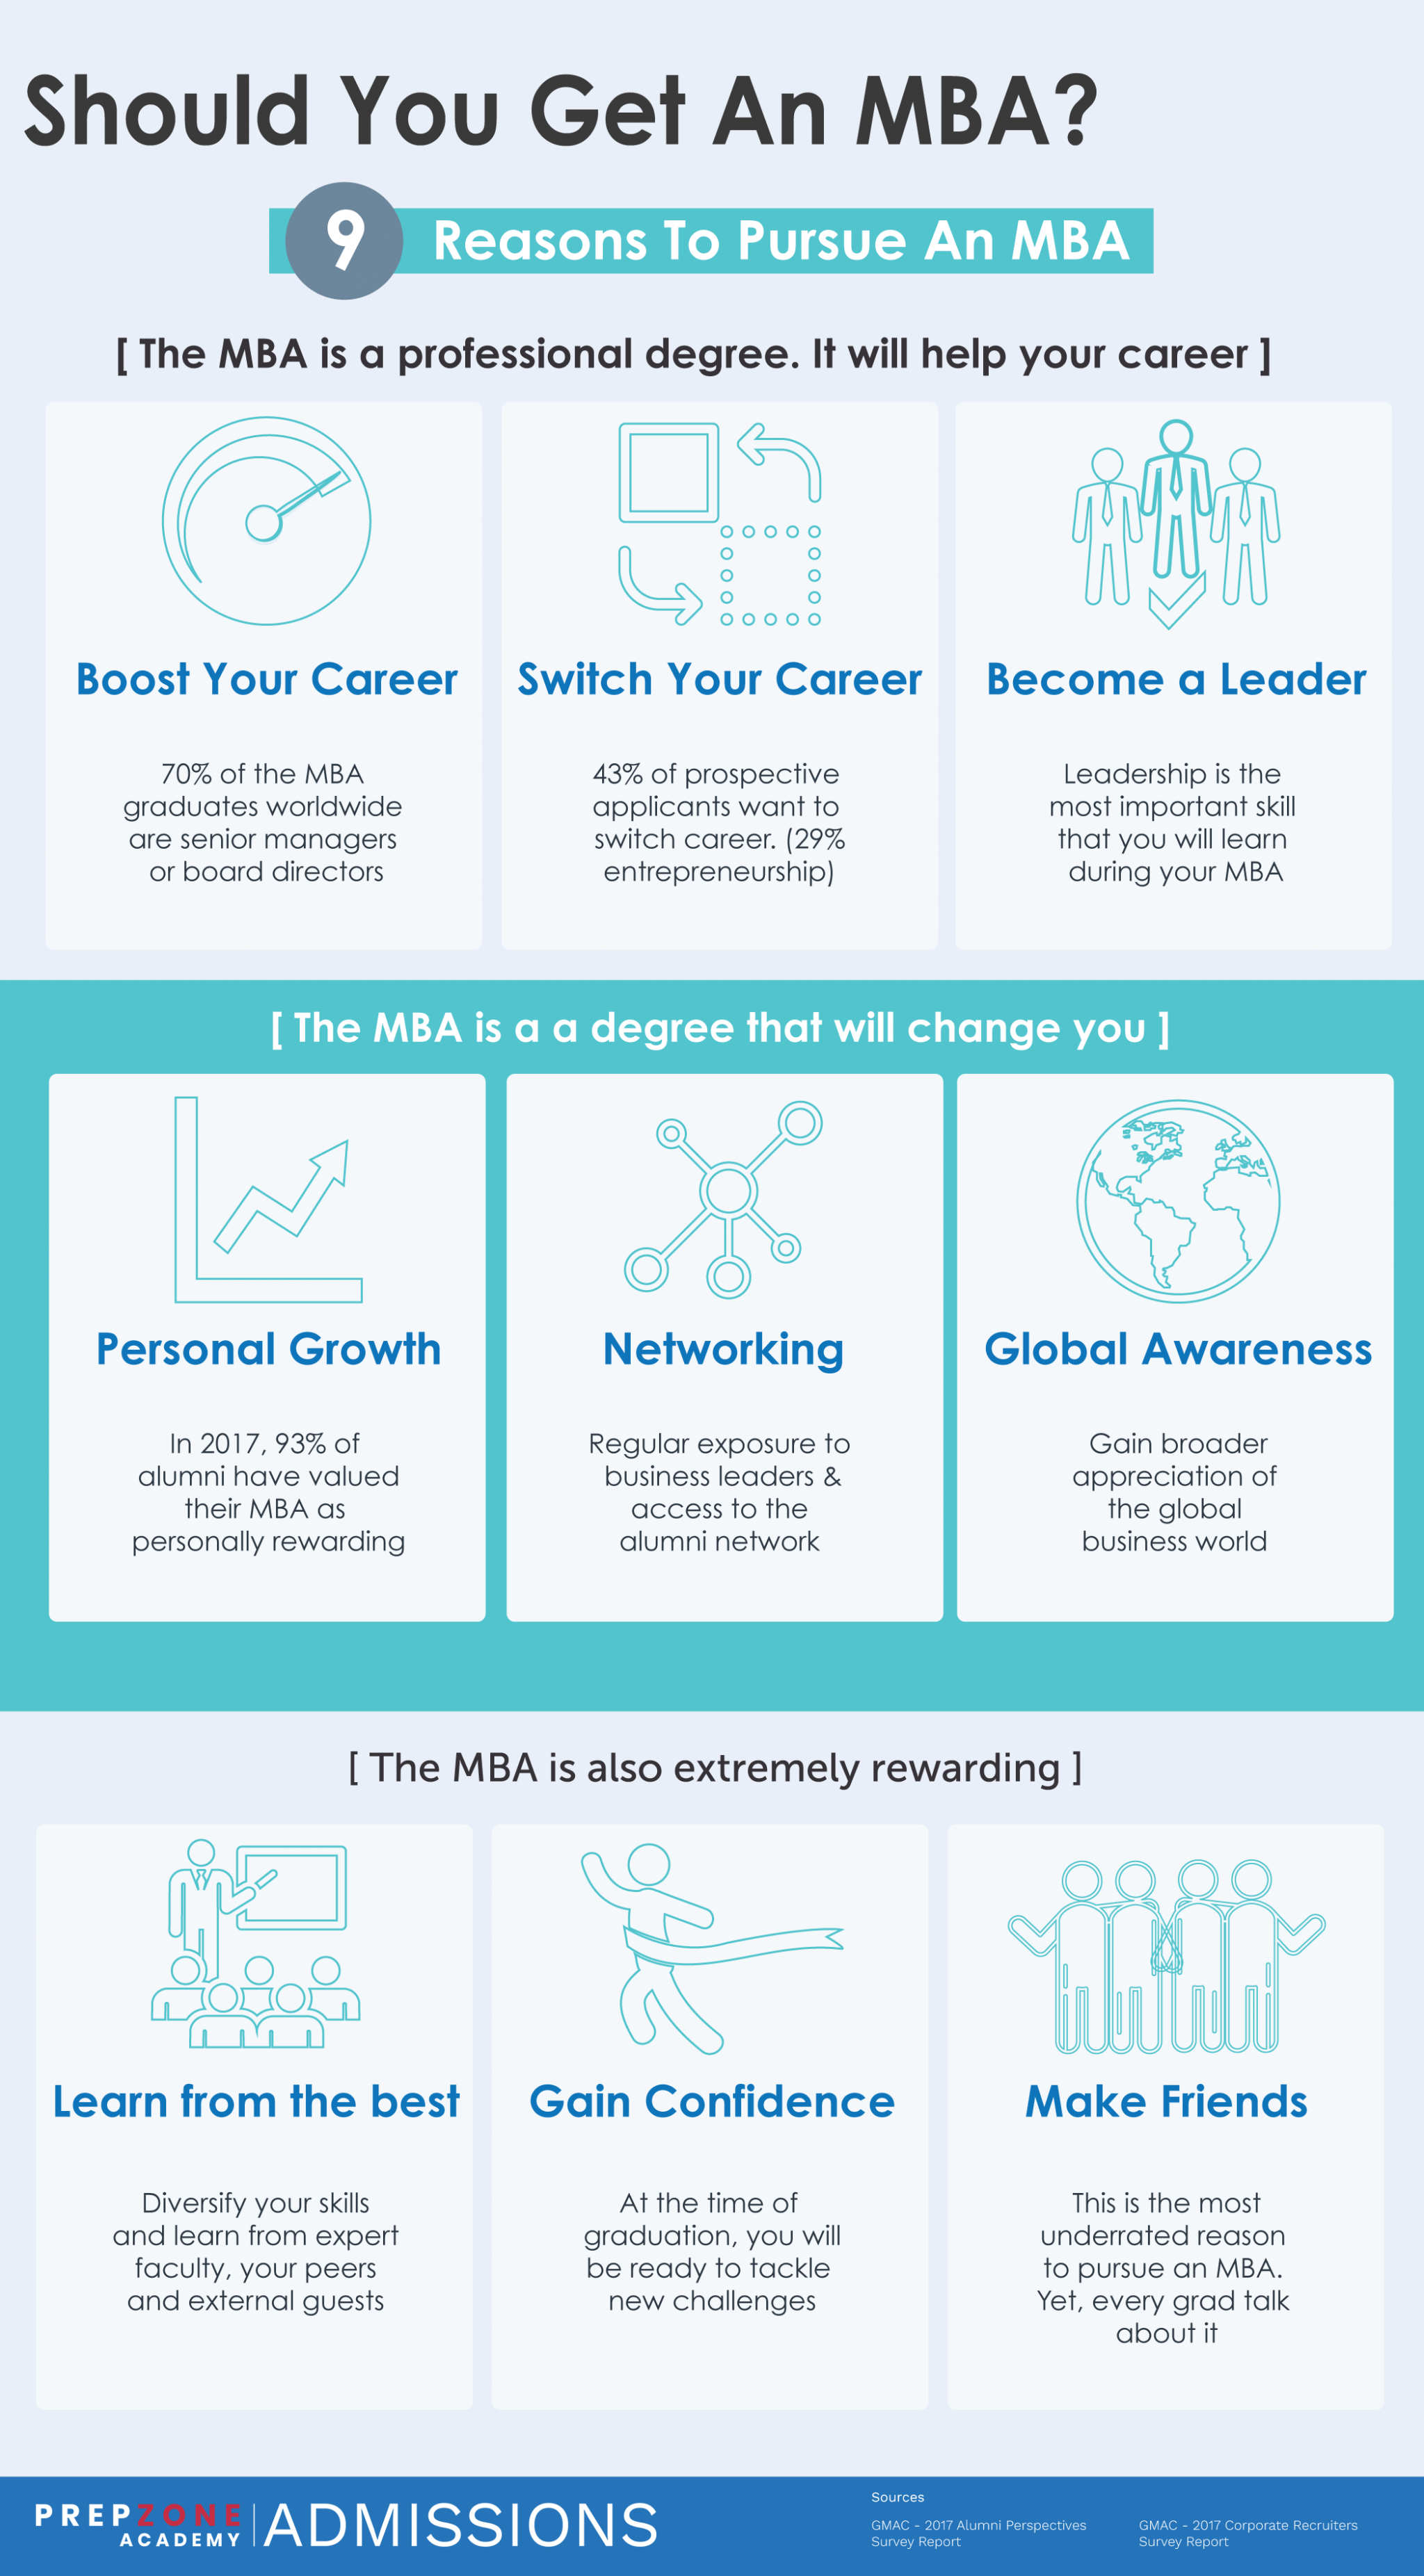 9 Reasons To Pursue An MBA